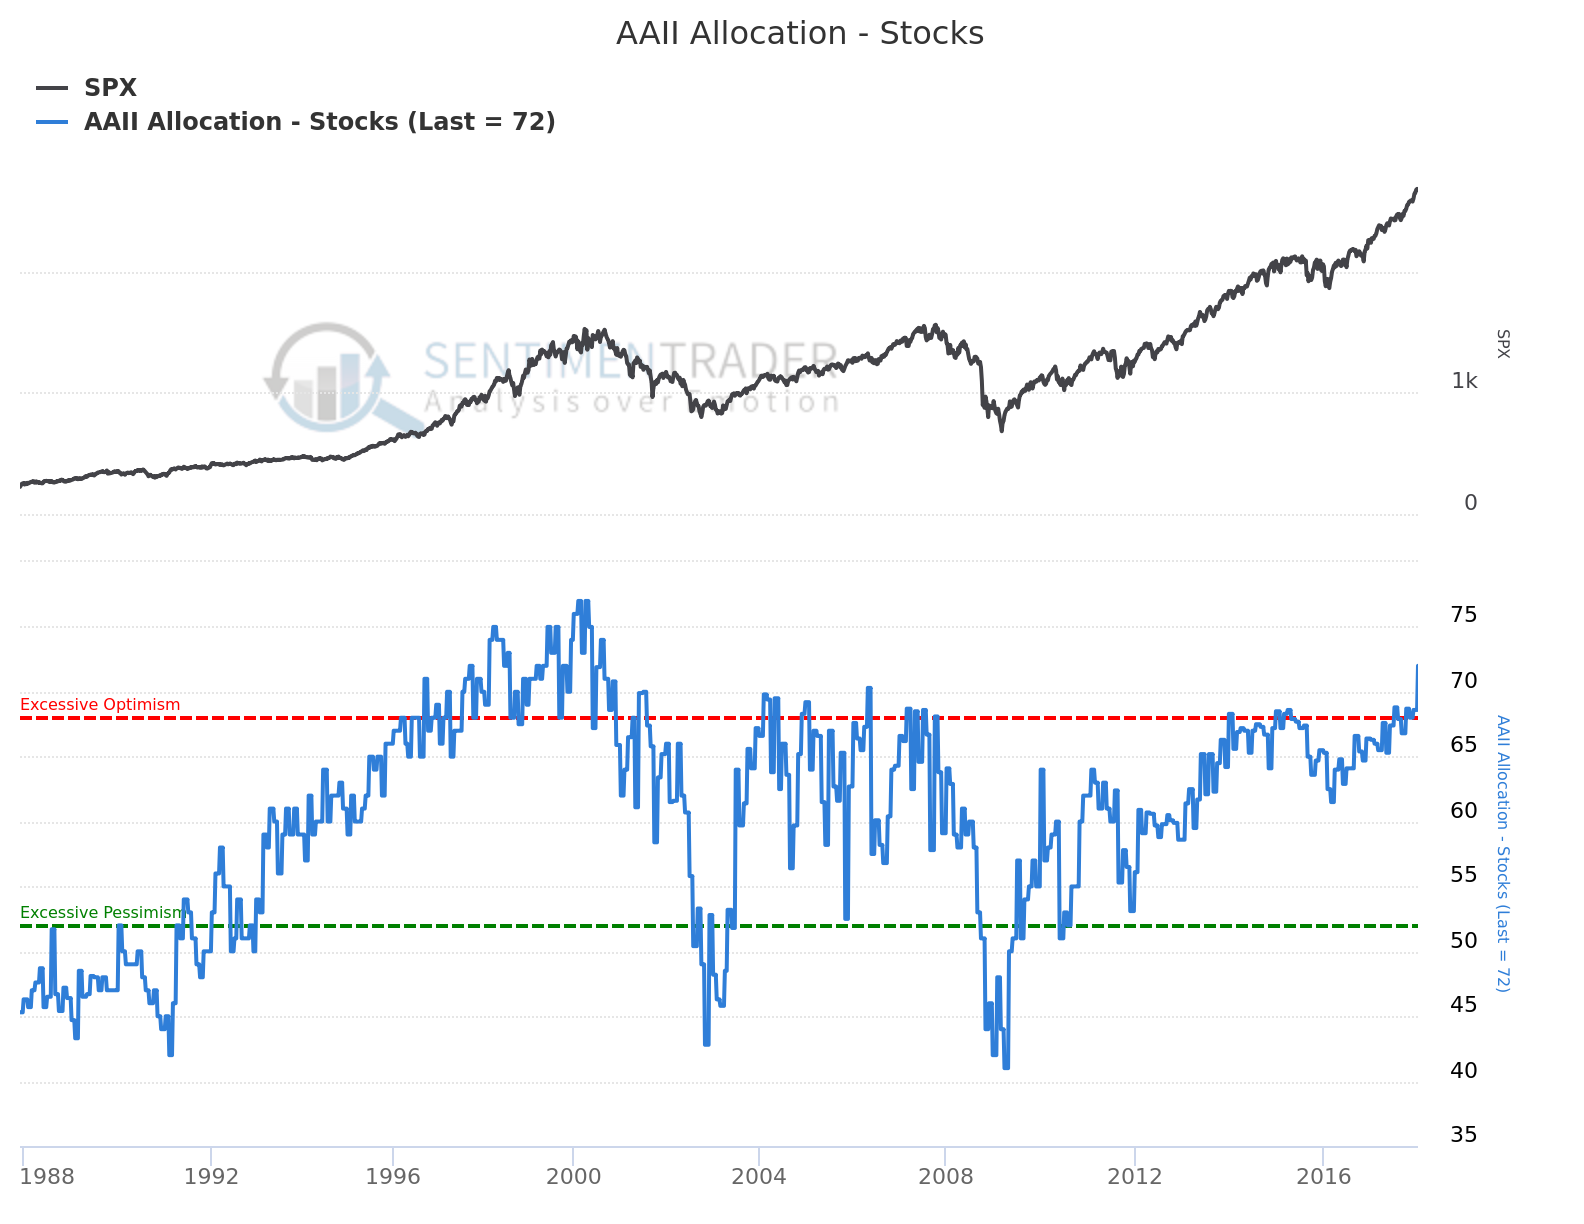 AAII Allocation - Stocks